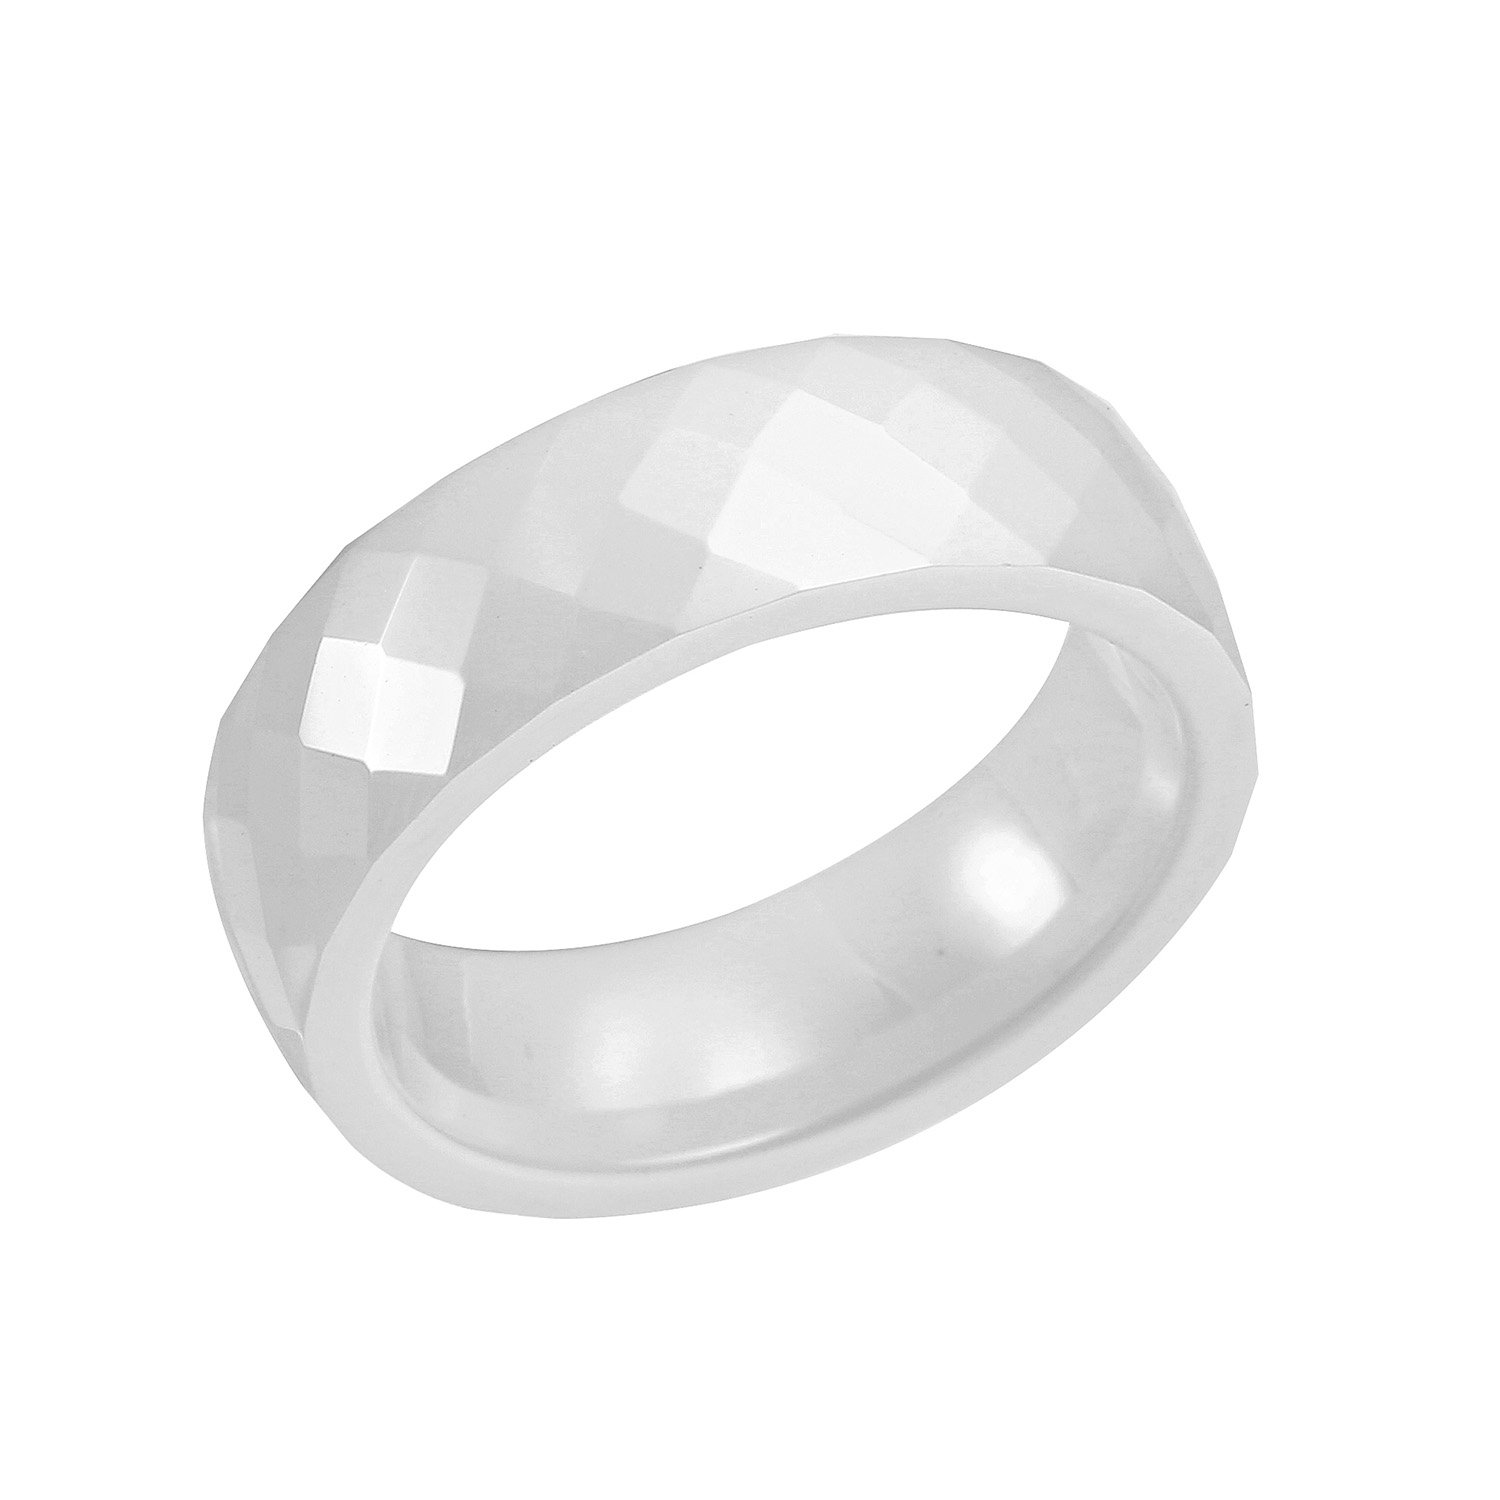 MURREAR Women Wedding Band Ring Classic Ceramic Ring Faceted Diamond-Cut High Polished 6mm Mother's Day Gift (White, 6)